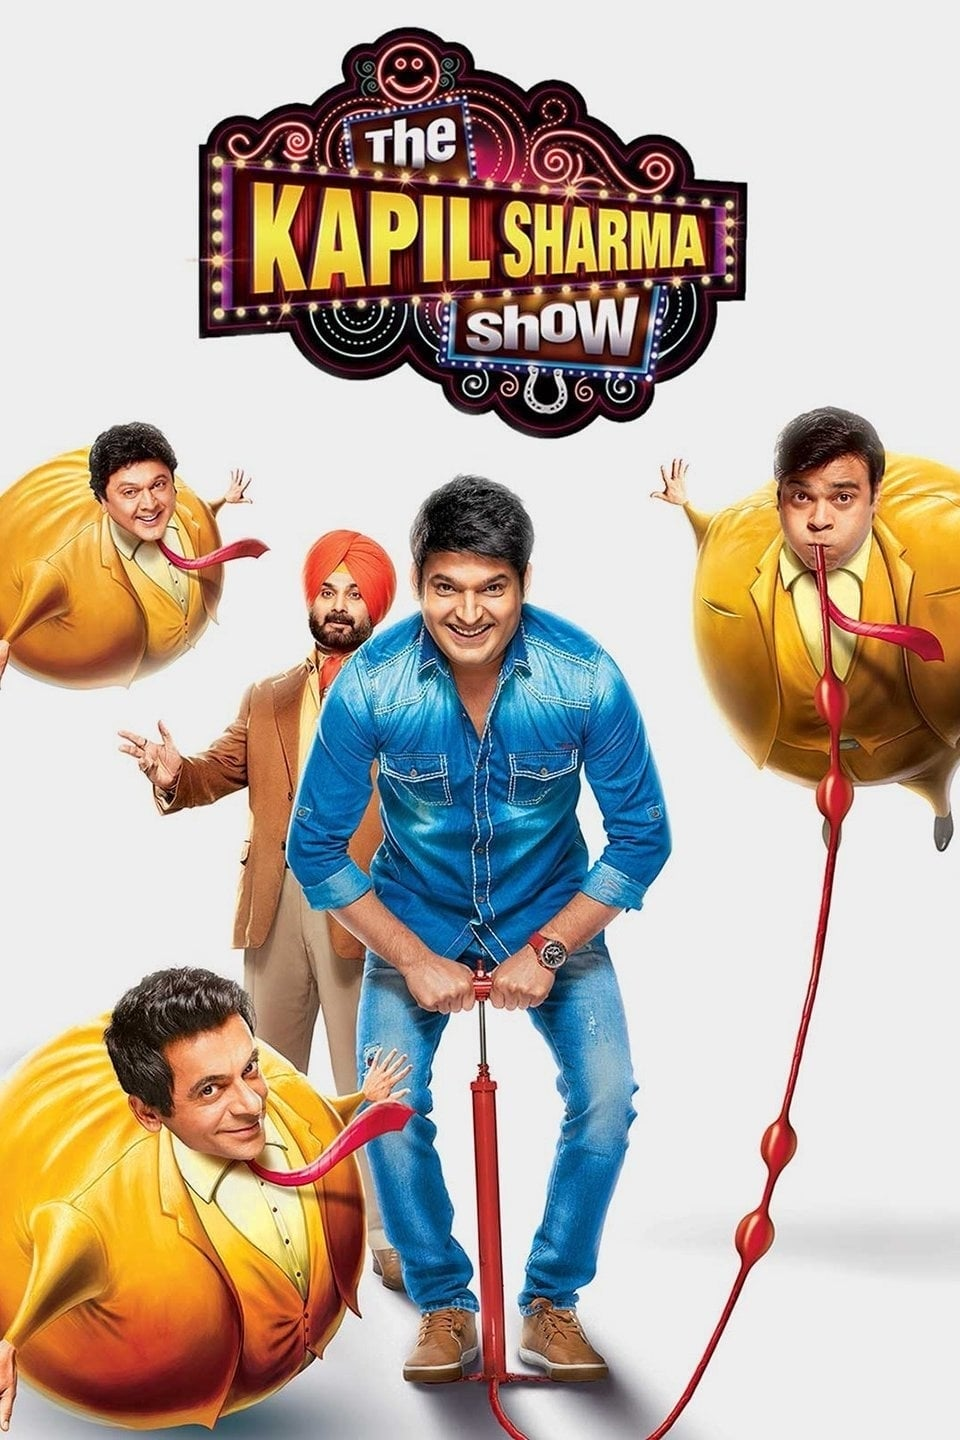 The Kapil Sharma Show Season 2 12th October 2019 576p WEB-DL 400MB